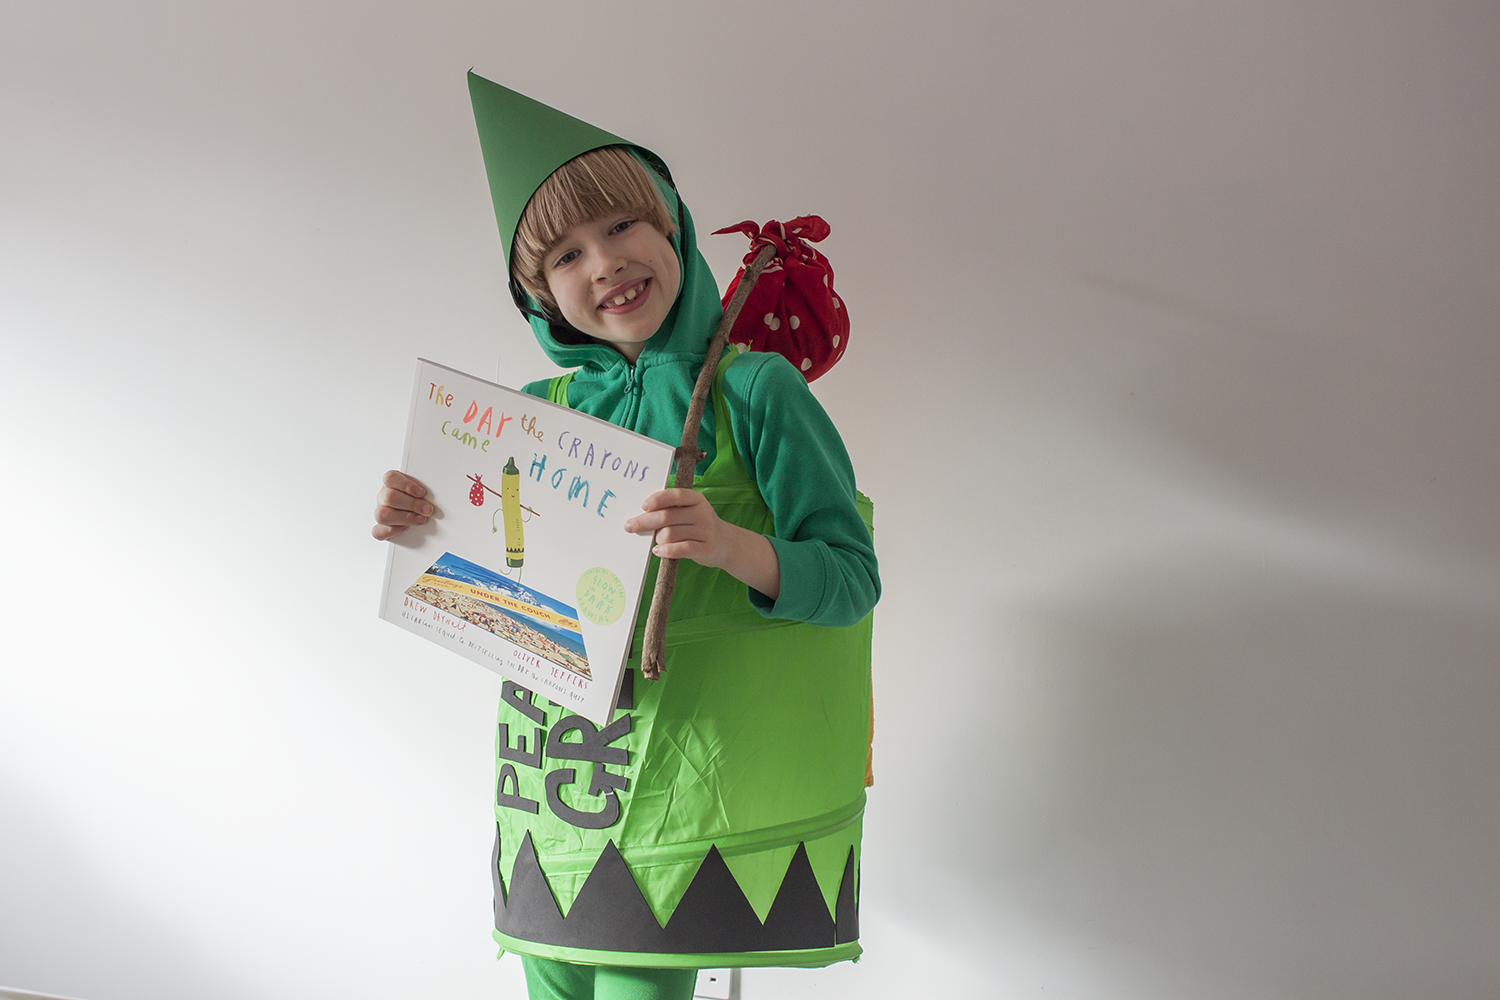 Toby dressed as Pea Green crayon from The Day the Crayons Came Home for World Book Day